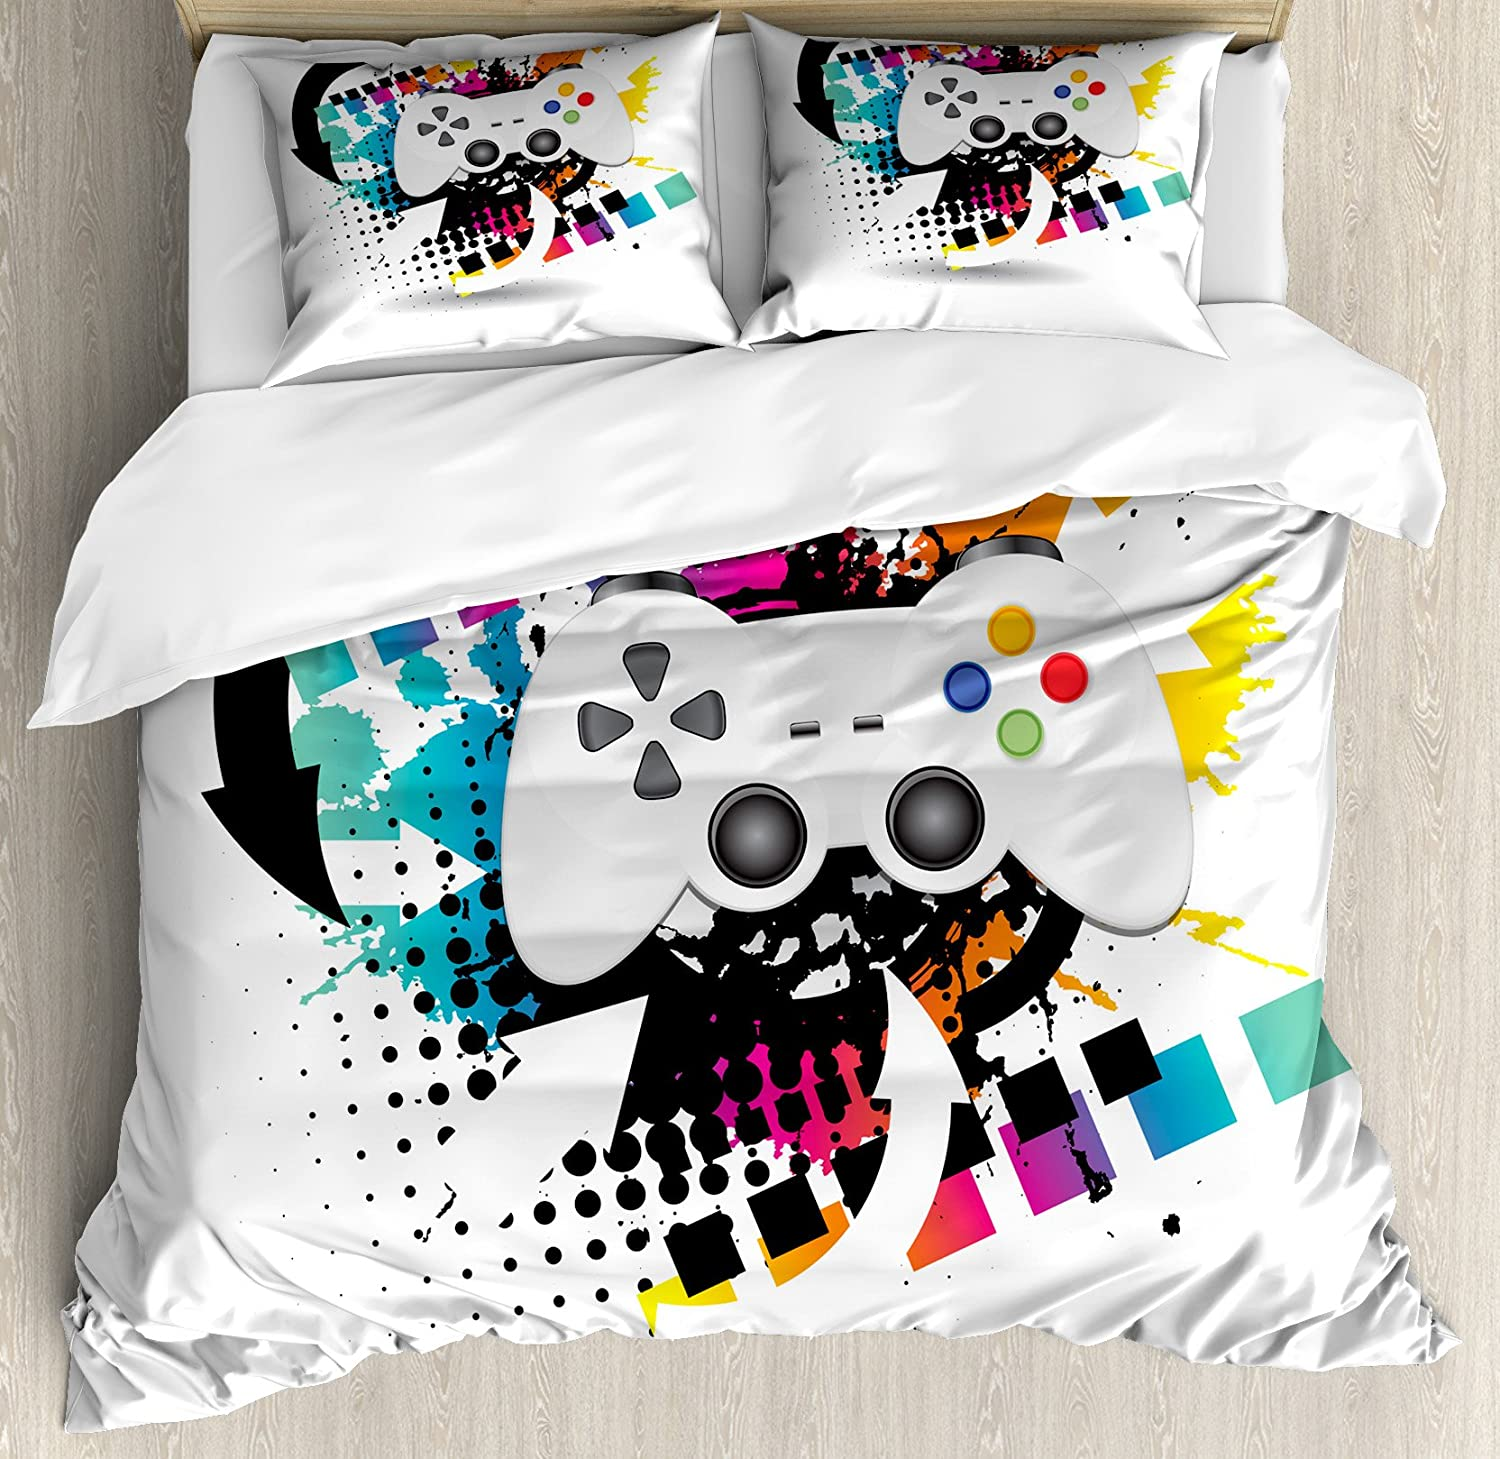 Lunarable Gamer Duvet Cover Set, Modern Console Game Controller with Halftone Motif and Color Splashes Background, Decorative 3 Piece Bedding Set with 2 Pillow Shams, Queen Size, Grey